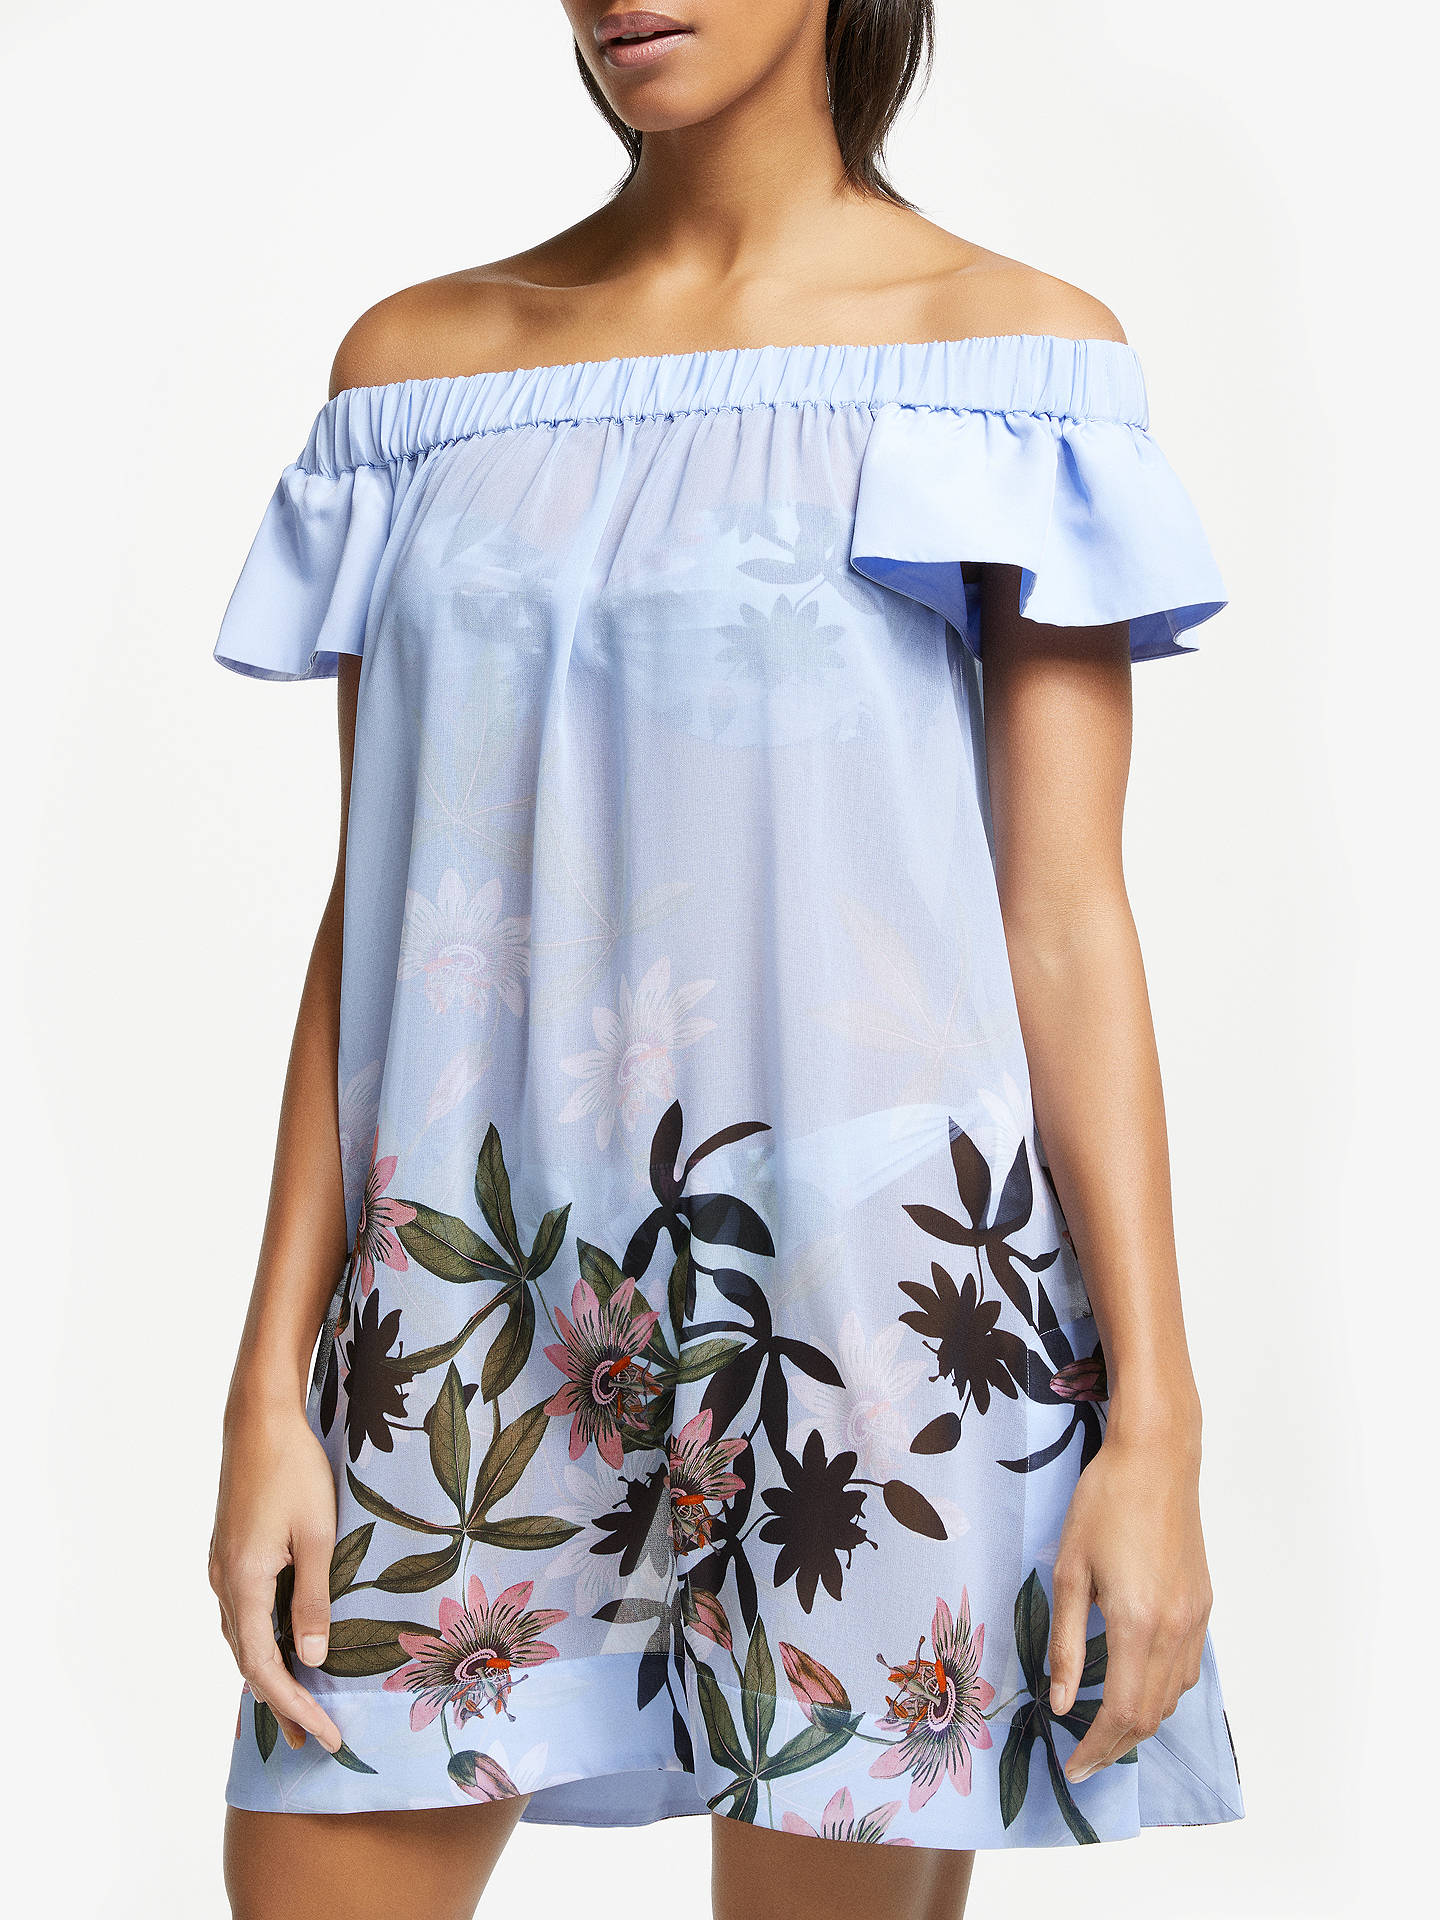 630f79e907 Buy Ted Baker Belriaa Floral Illusion Print Cover Up, Heavenly Blue, S  Online at ...